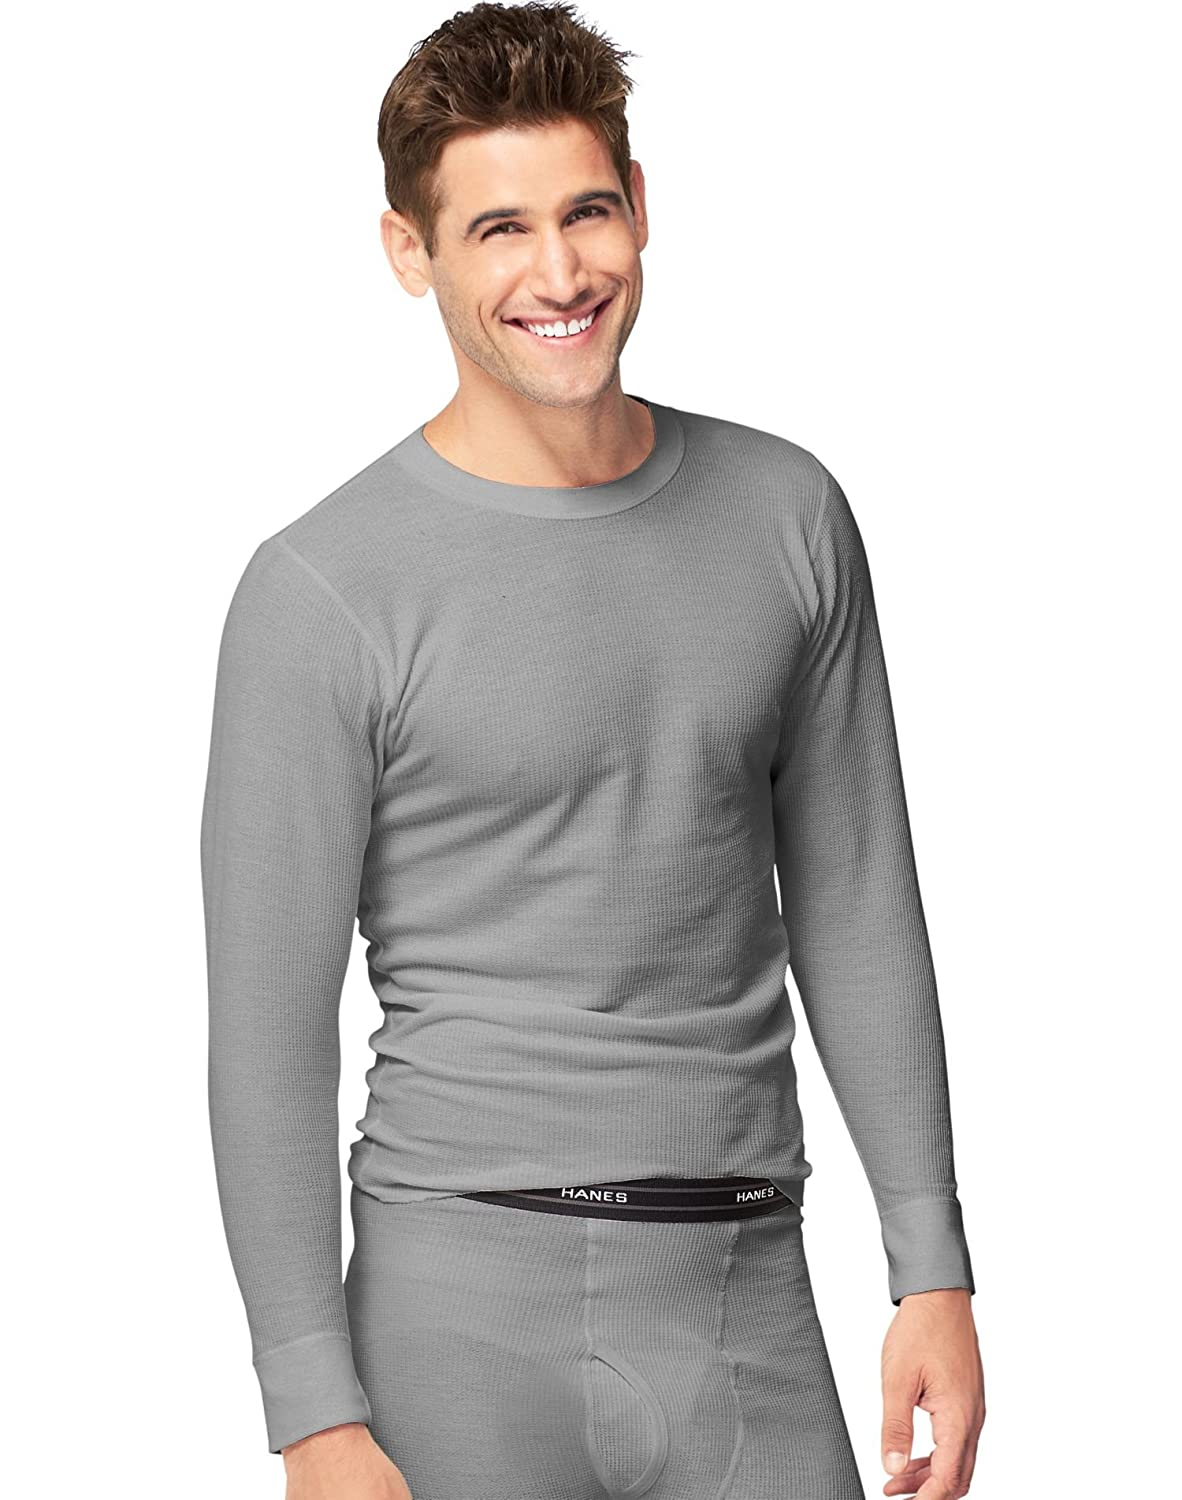 Hanes Tall Mens Big Red Label X-Temp Thermal Crew Top